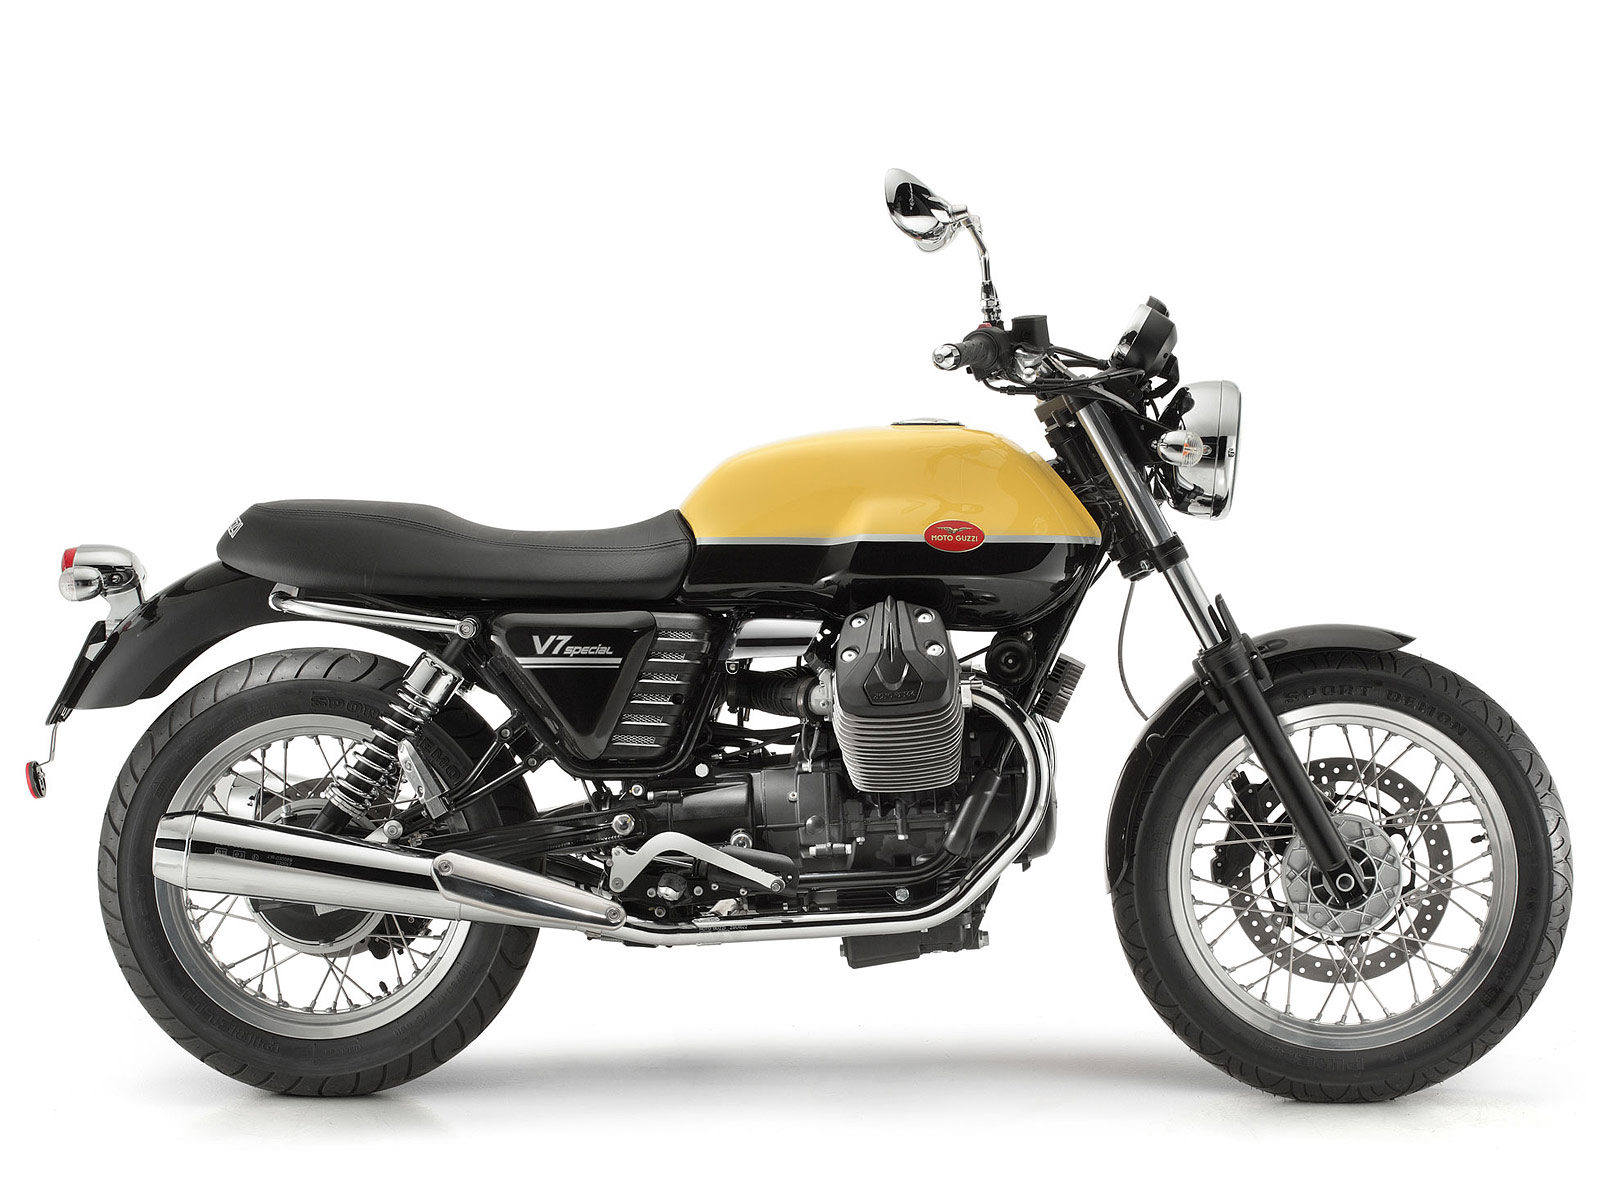 2013 moto guzzi v7 special motorcycle specifications photos. Black Bedroom Furniture Sets. Home Design Ideas